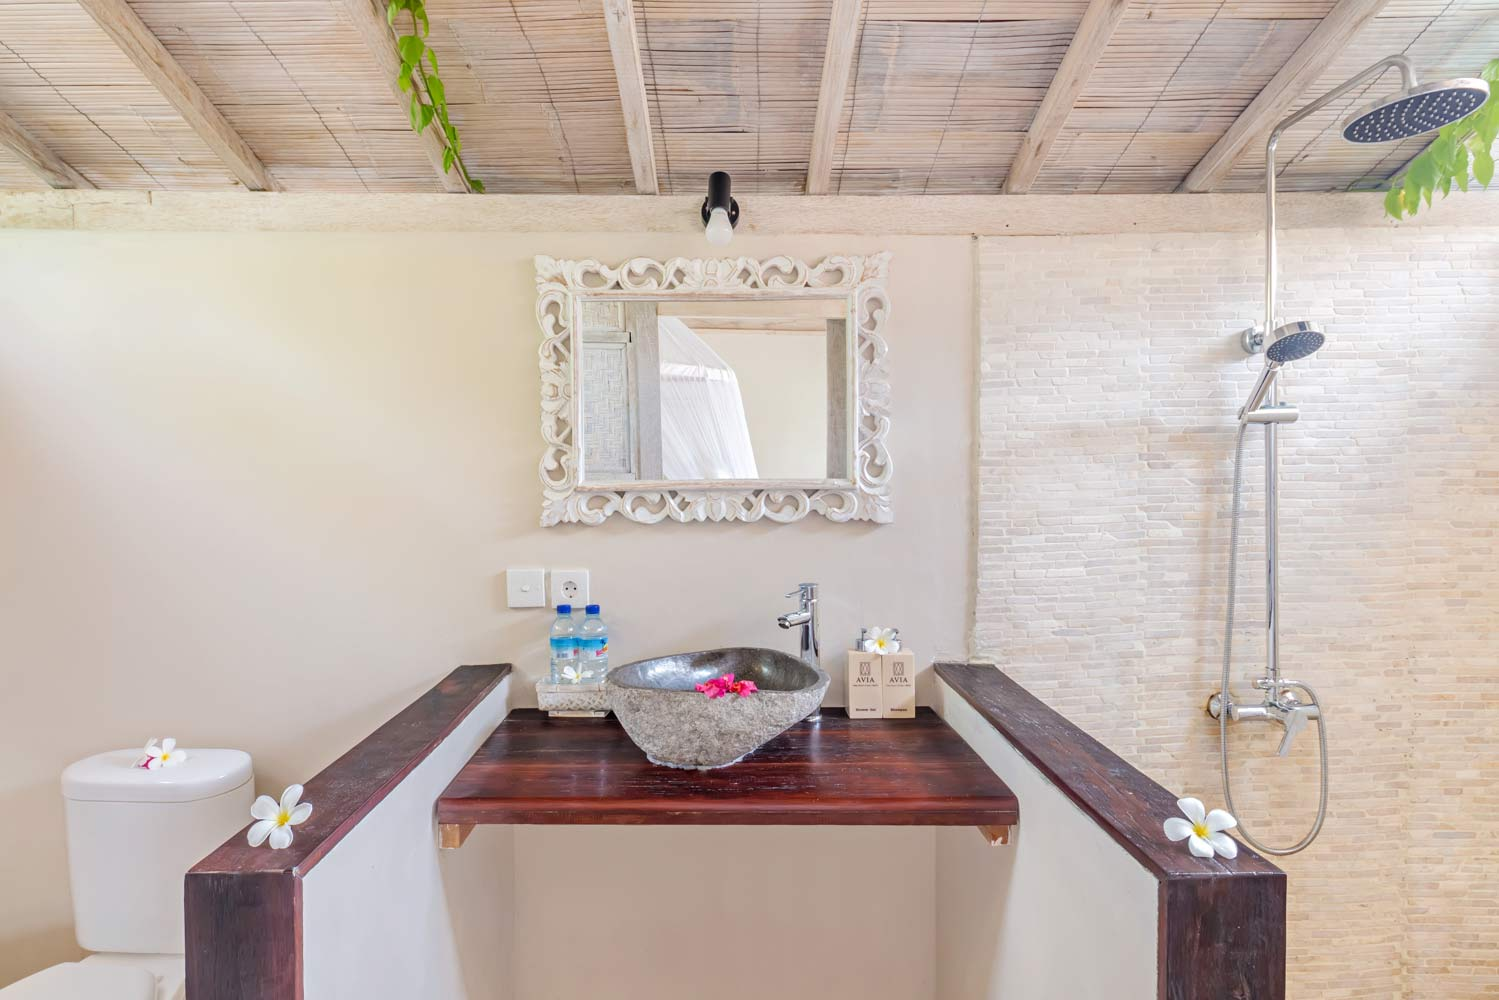 Luxury bathroom - Avia Villa Resort Gili Meno